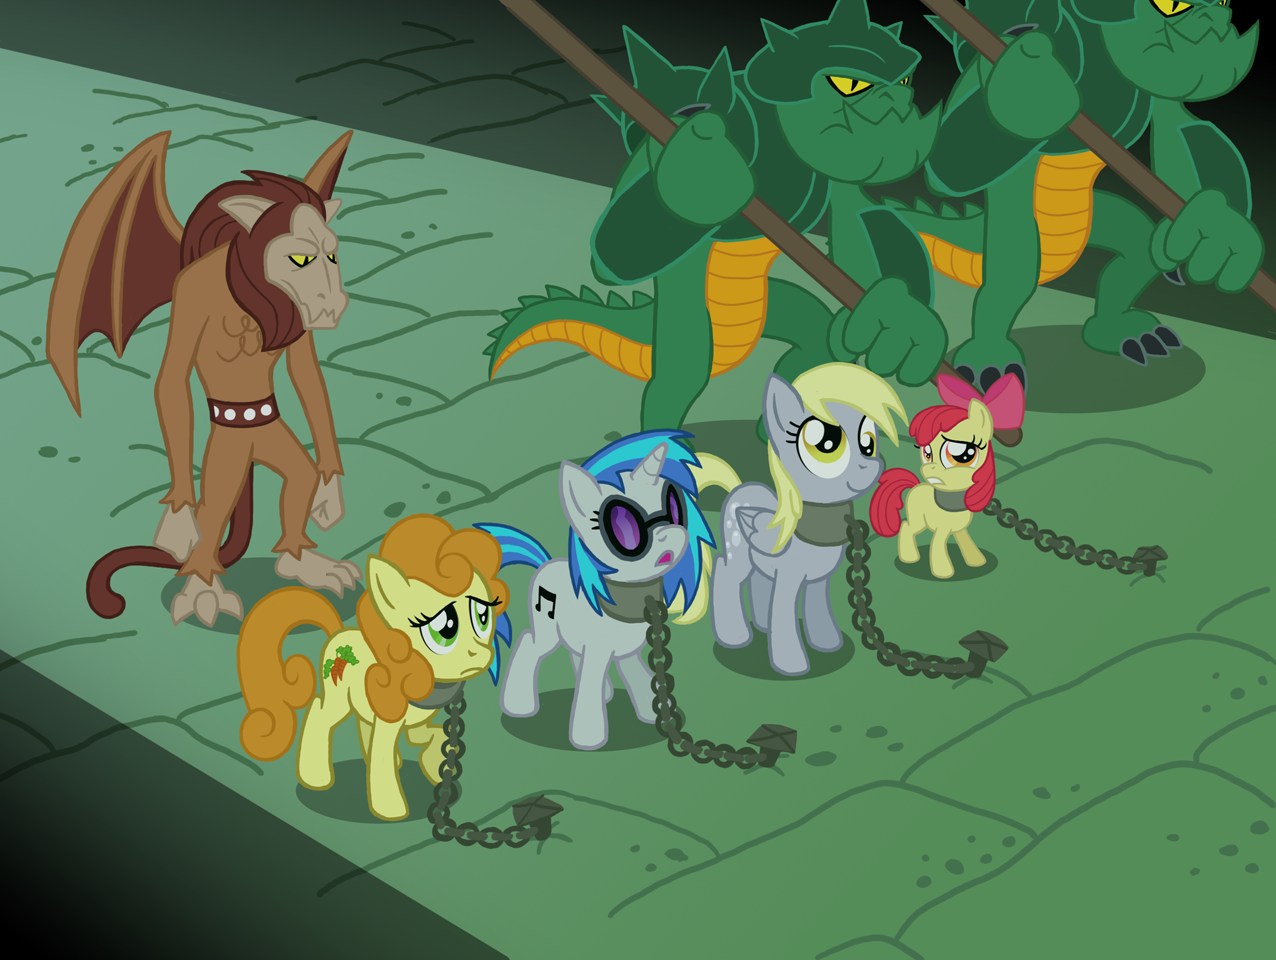 [Obrázek: 34302__safe_derpy+hooves_apple+bloom_vin...lapony.png]